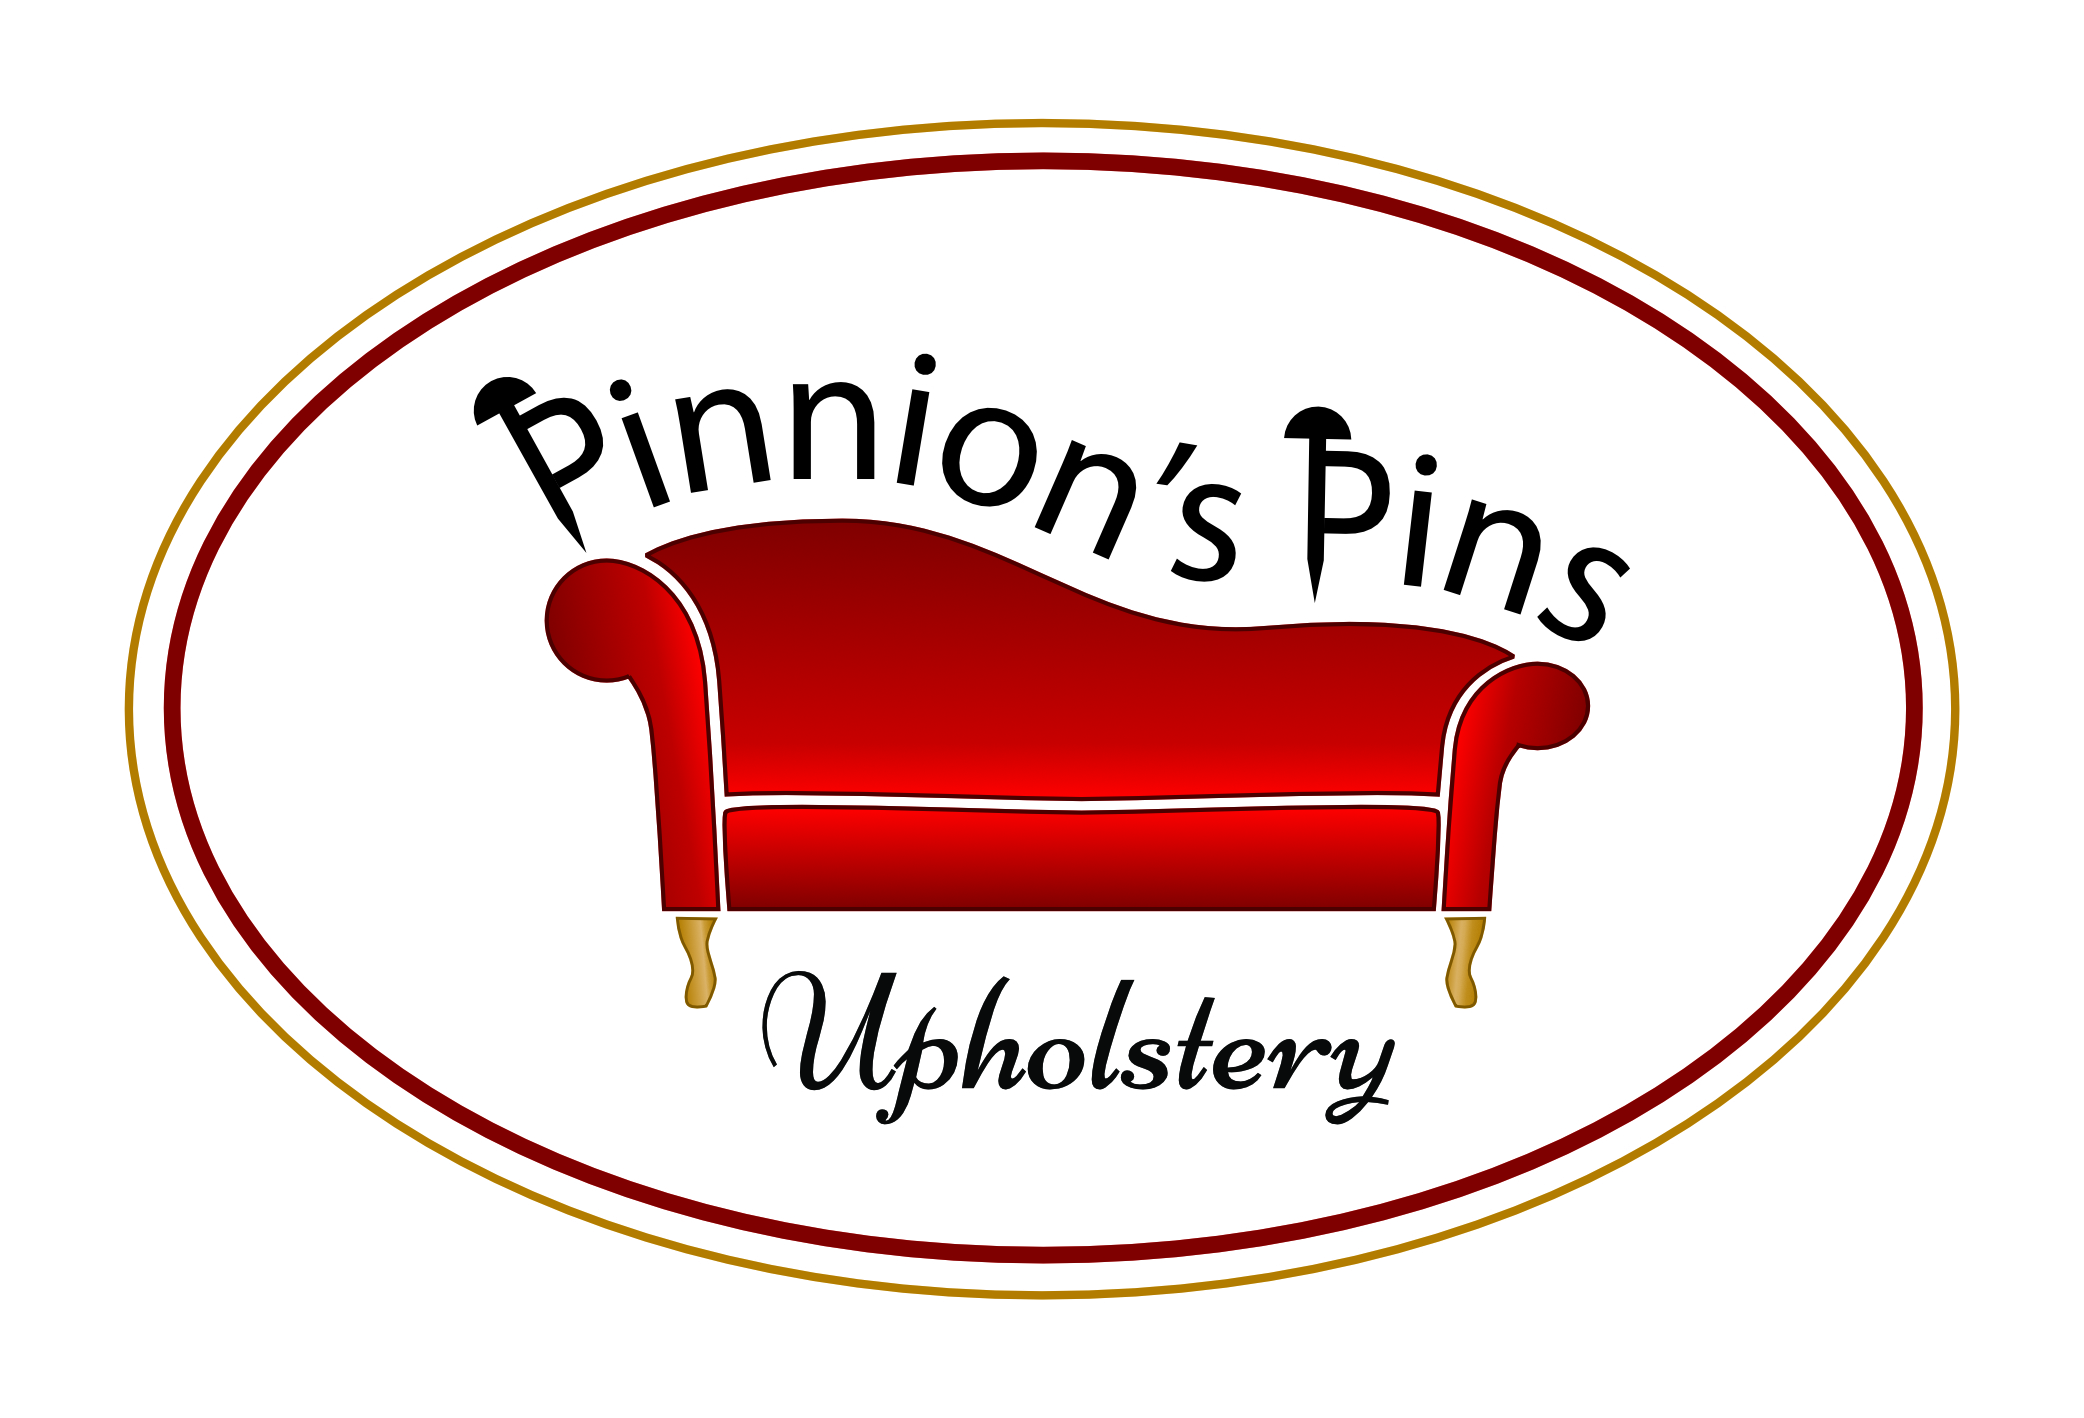 Pinnion's Pins Upholstery logo